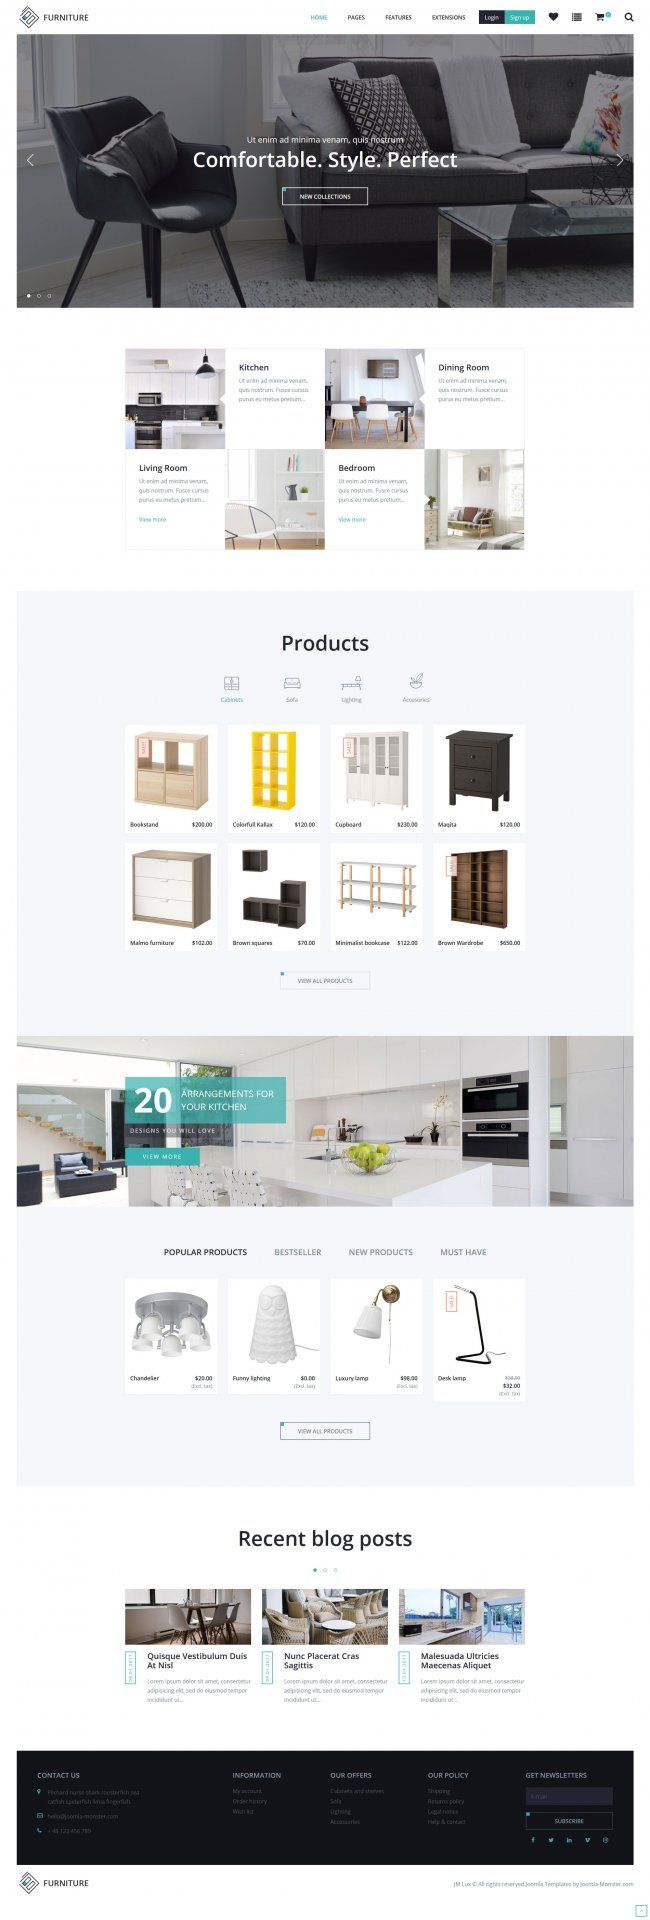 JM Lux - modern Joomla Ecommerce template presented as an example of furniture and decor store. Homepage example for furniture online store. #modern #Joomla #ecommerce #template #furniture #decor #store  https://www.joomla-monster.com/joomla-templates/i/22-ecommerce/244-jm-lux